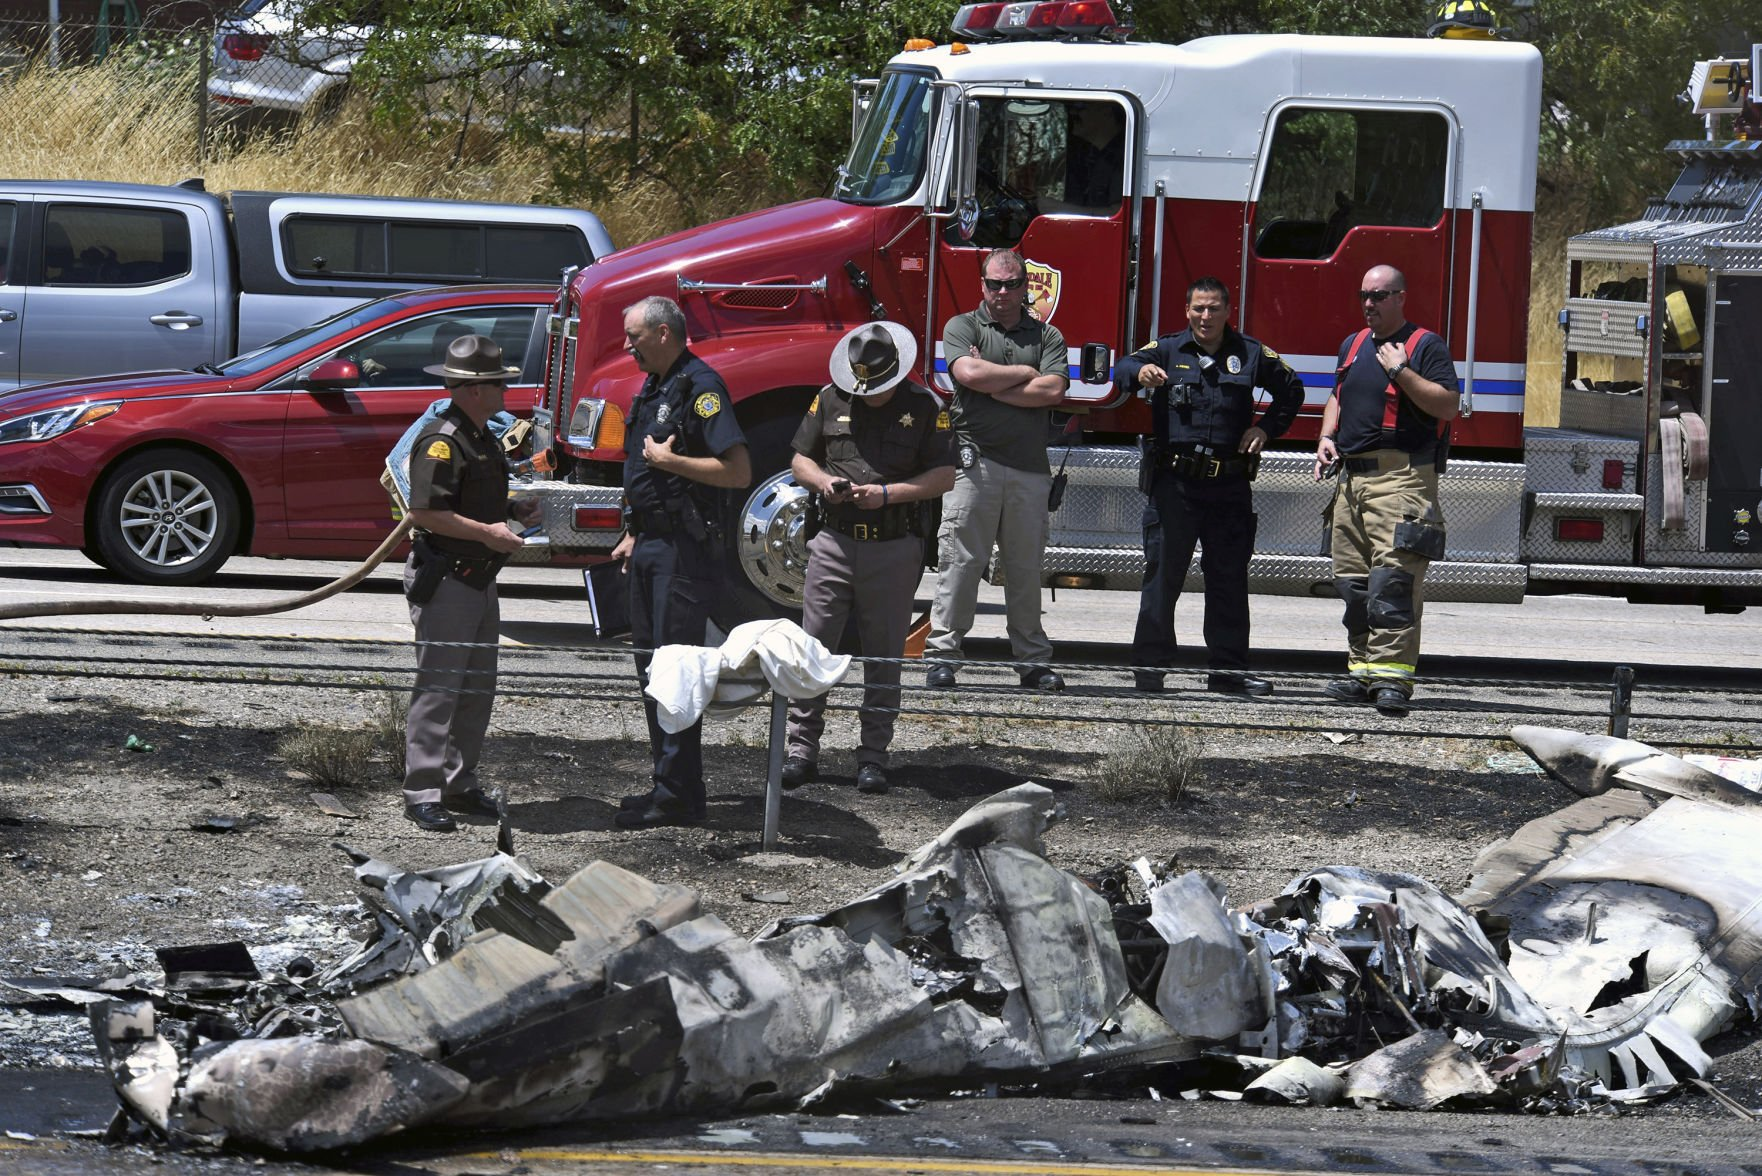 Utah I-15 Plane Crash: Photos & Videos of Damage Near Riverdale Road